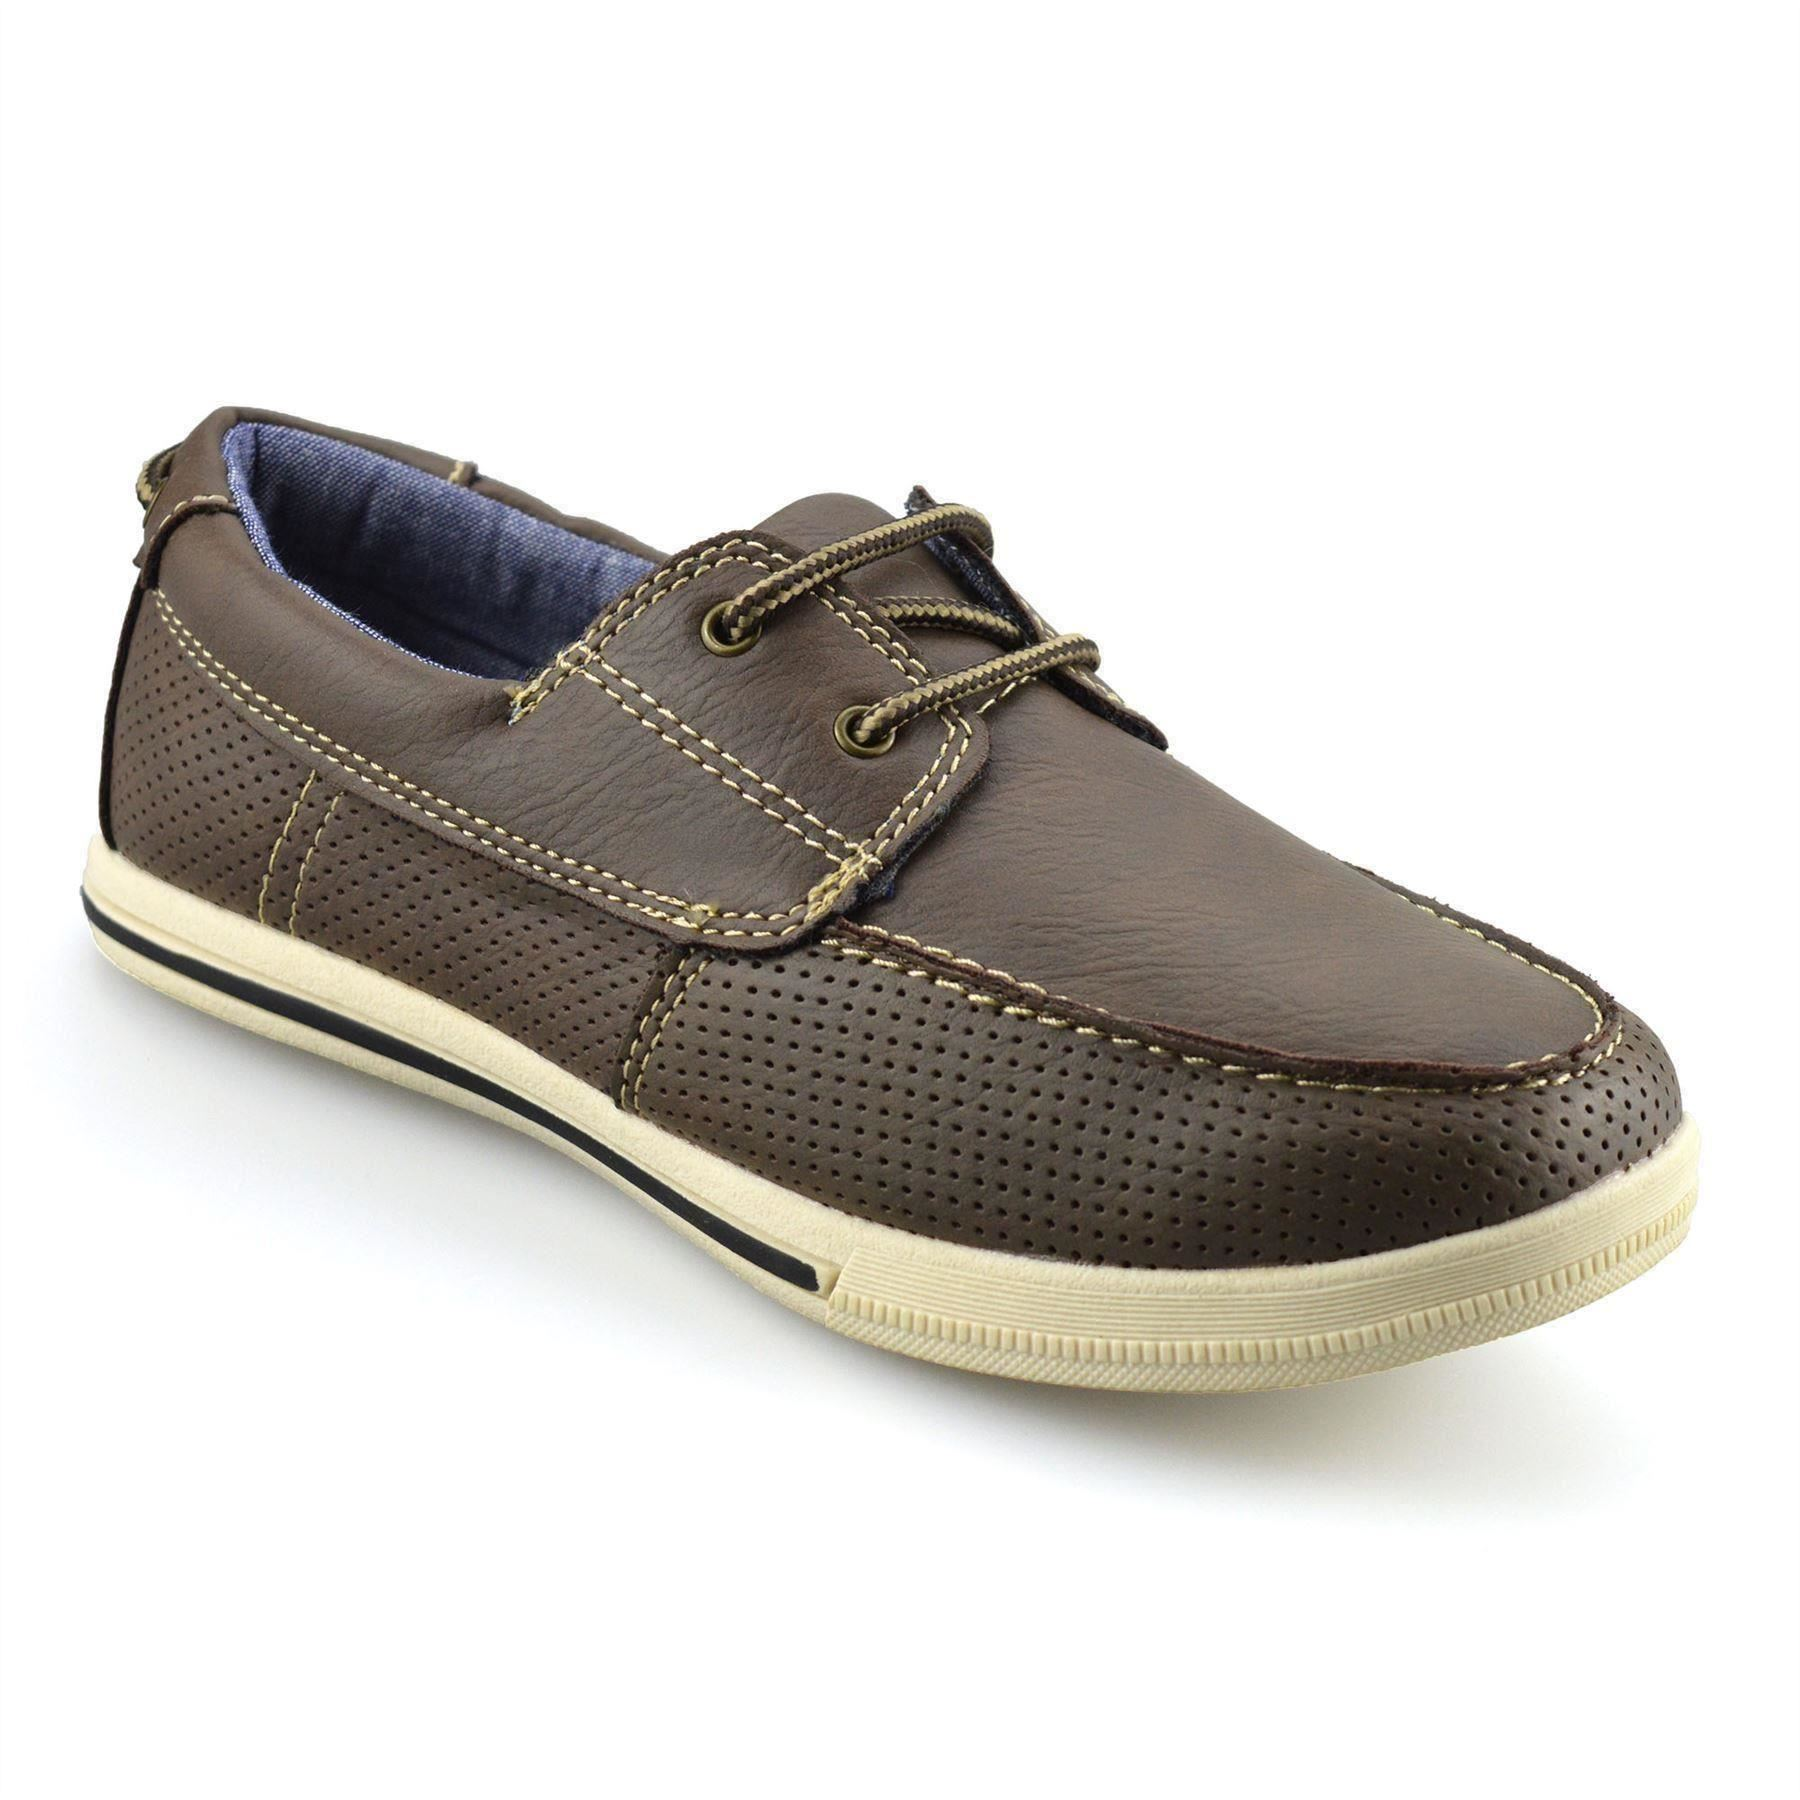 Boys-Kids-Casual-Summer-Lace-Up-Smart-Walking-School-Trainers-Boat-Shoes-Size thumbnail 7